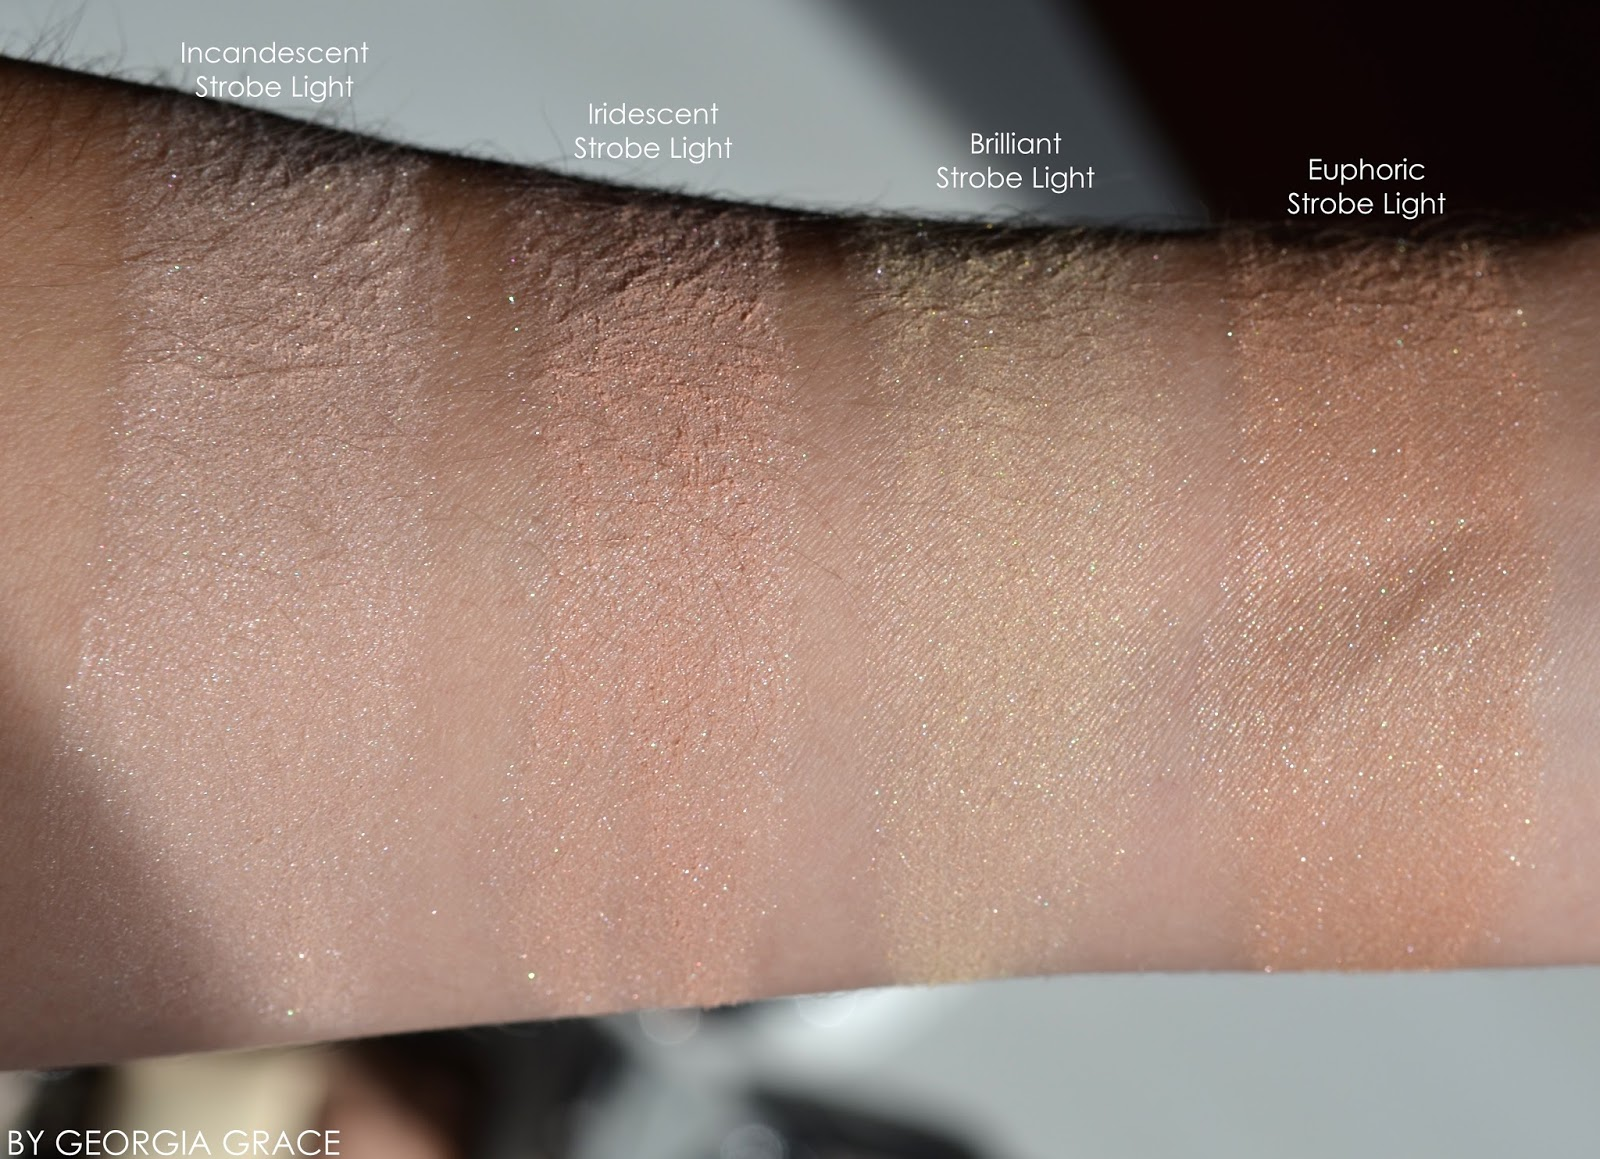 Marvelous Hourglass Ambient Strobe Lighting Powder Highlighters Swatches Review  Incandescent Iridescent Brilliant Euphoric Pictures Gallery